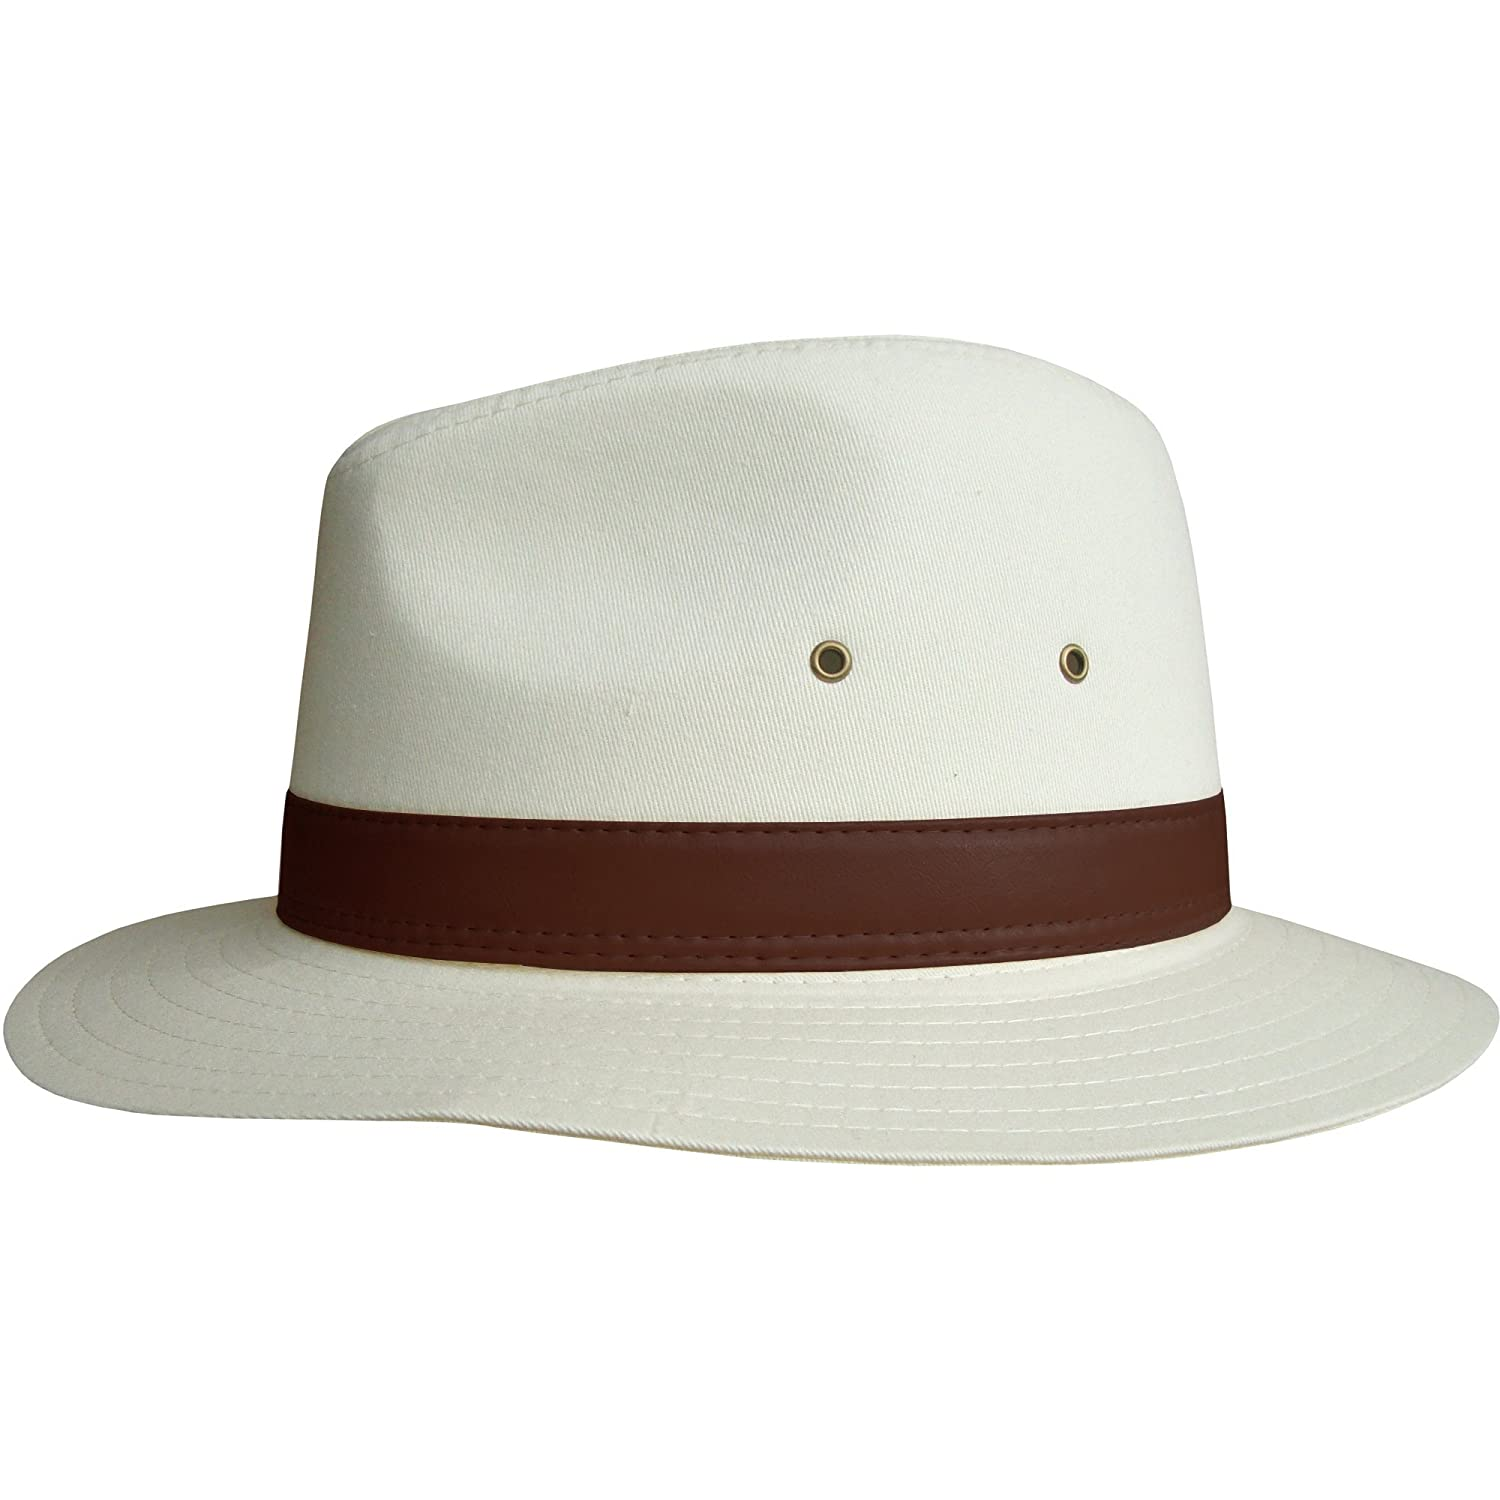 Men's Unisex Natural Fedora Summer Sun Hat with Faux Leather Band